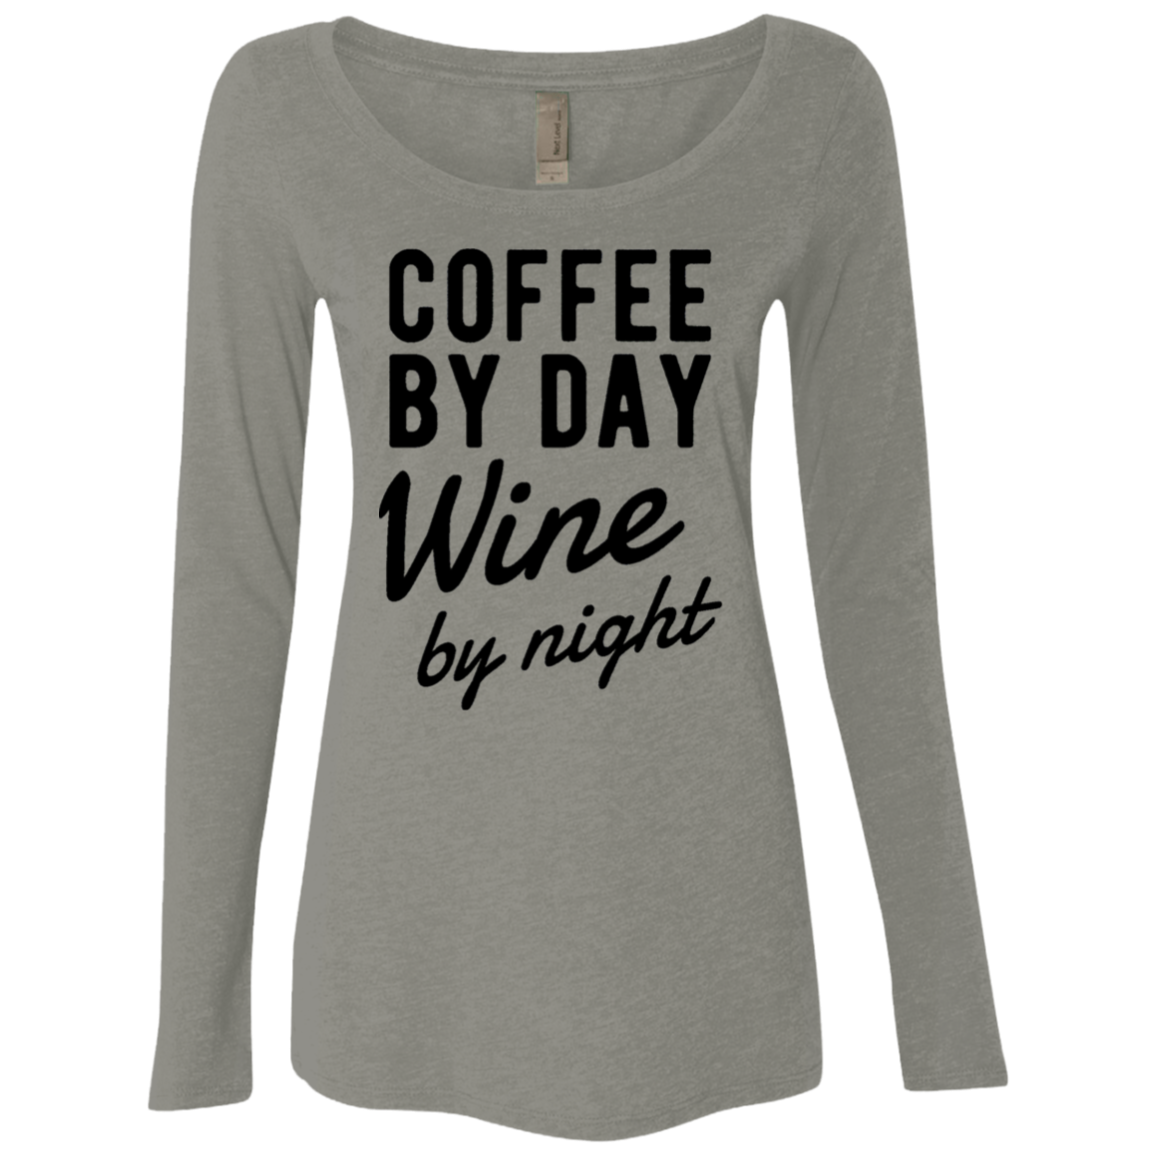 Coffee by Day Wine by Night Women's Long Sleeve Tee - Trendy Tees